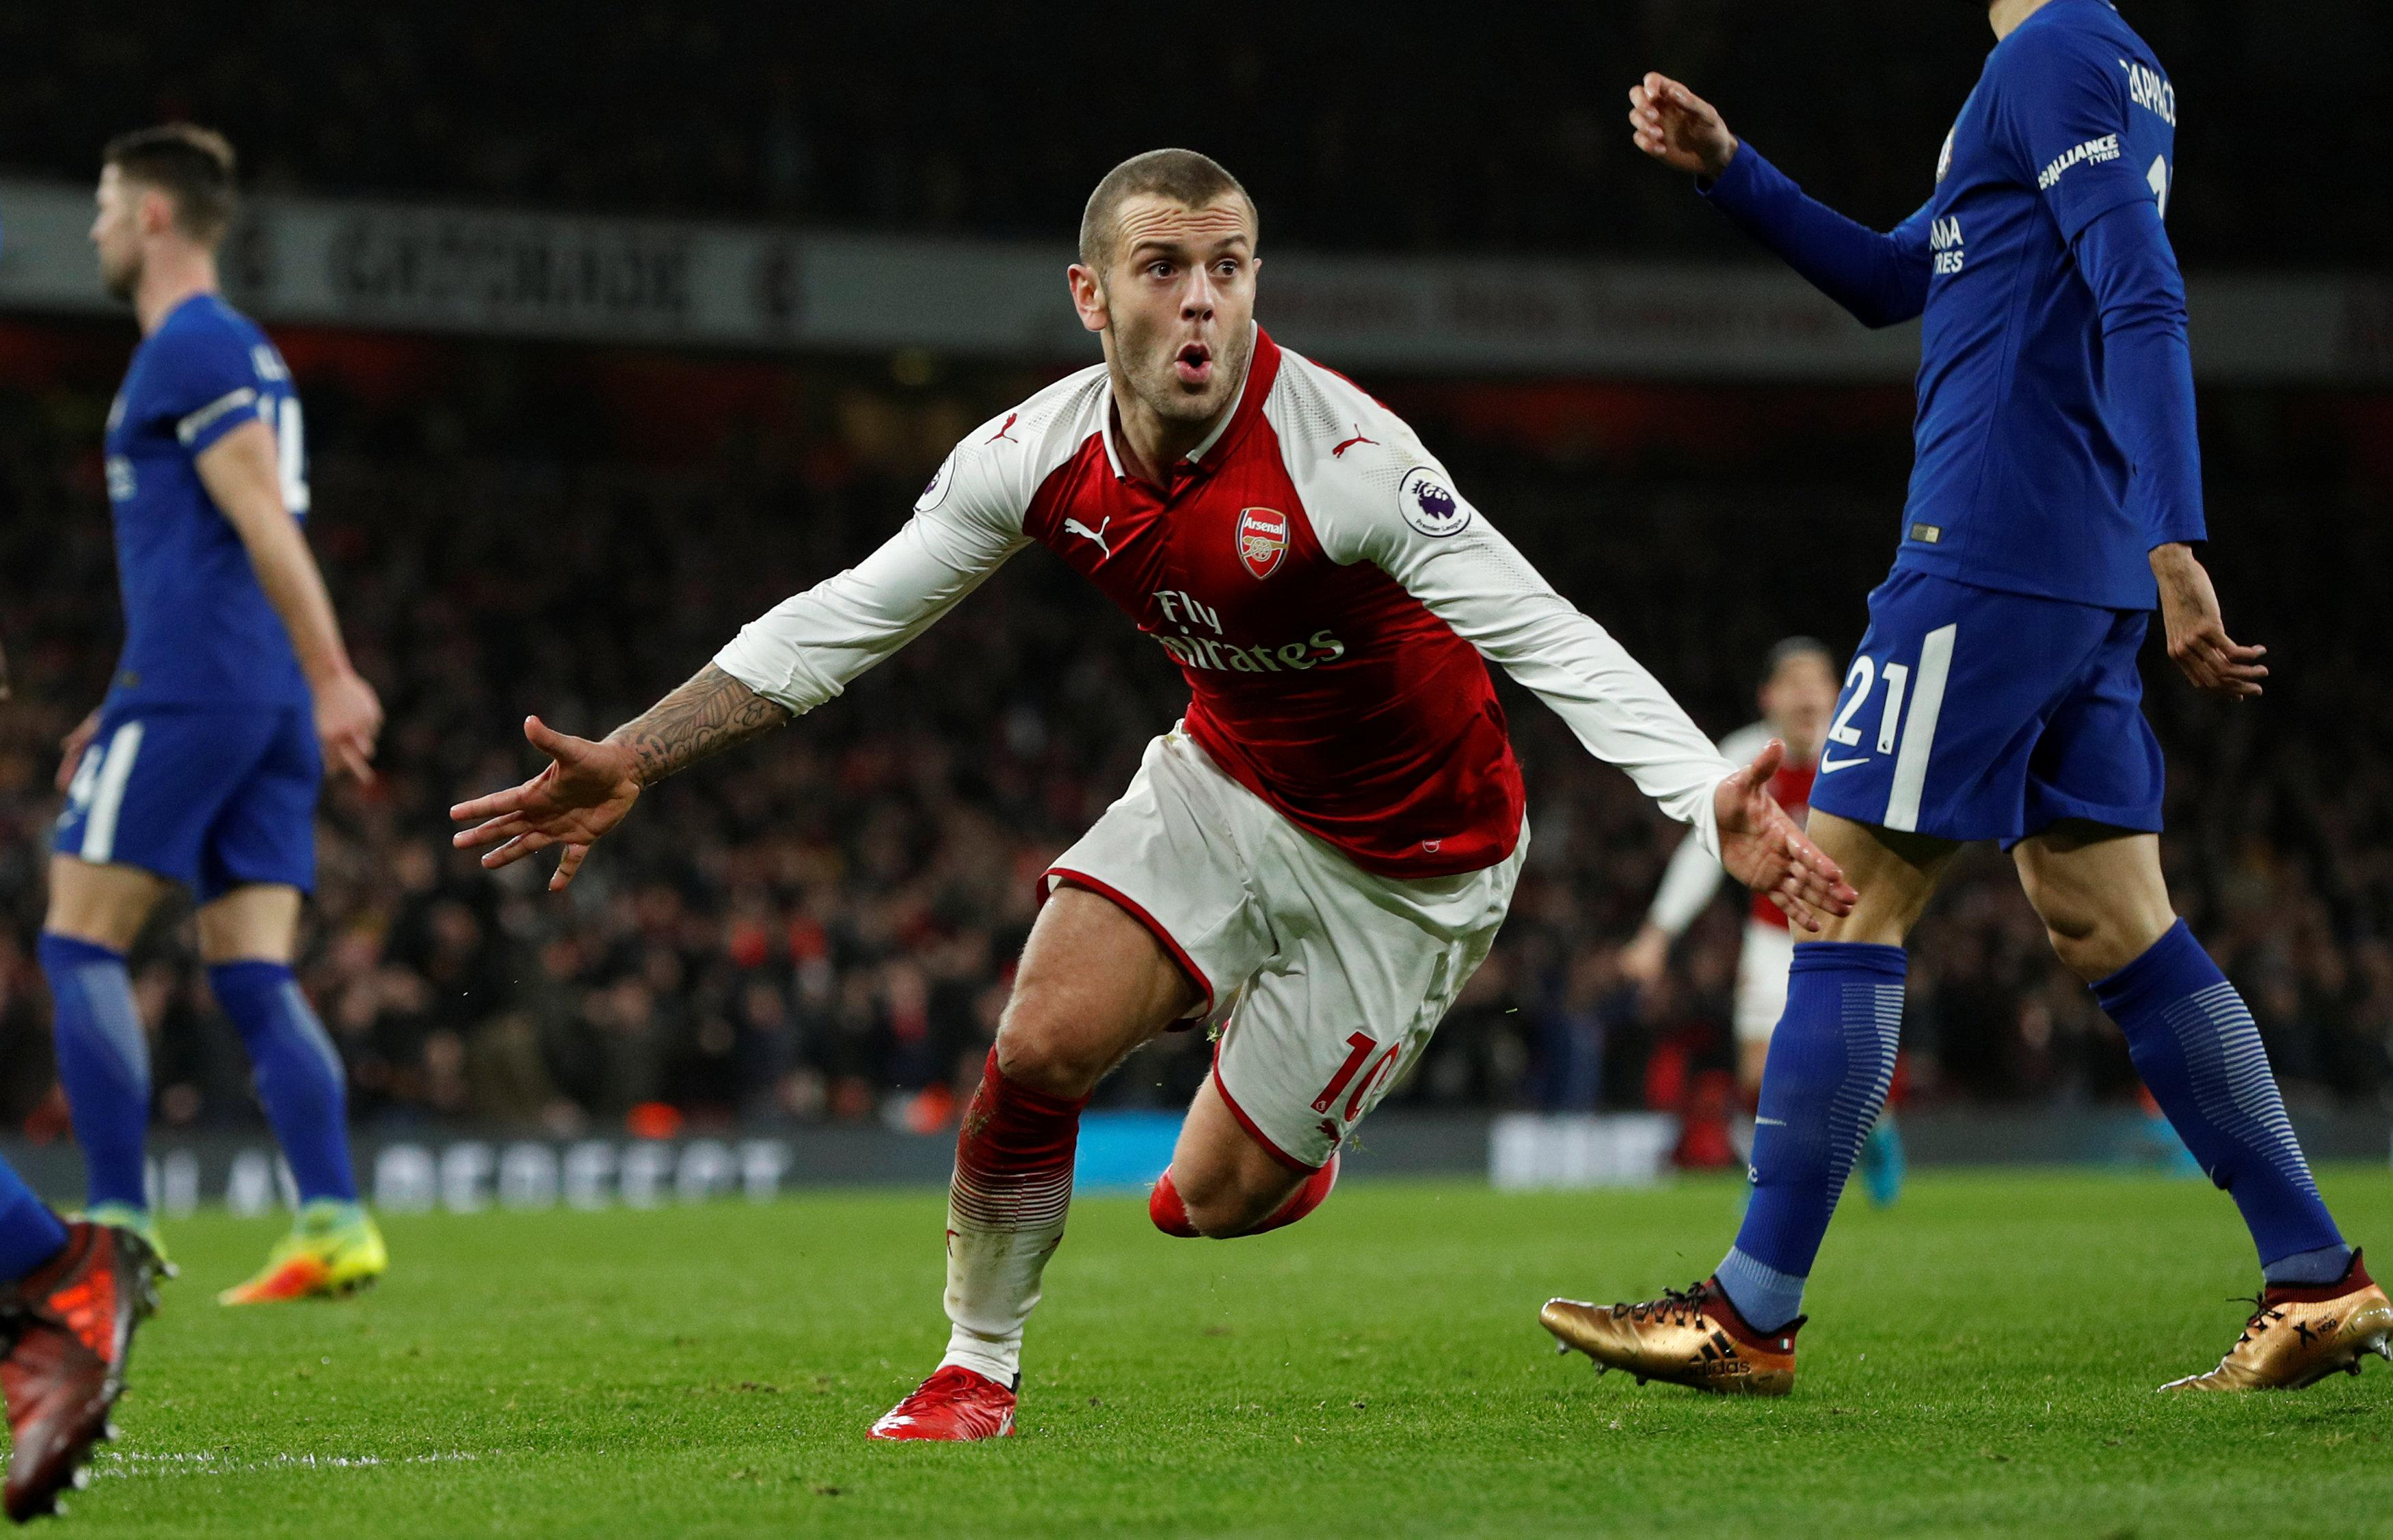 Wilshere has been in great form lately